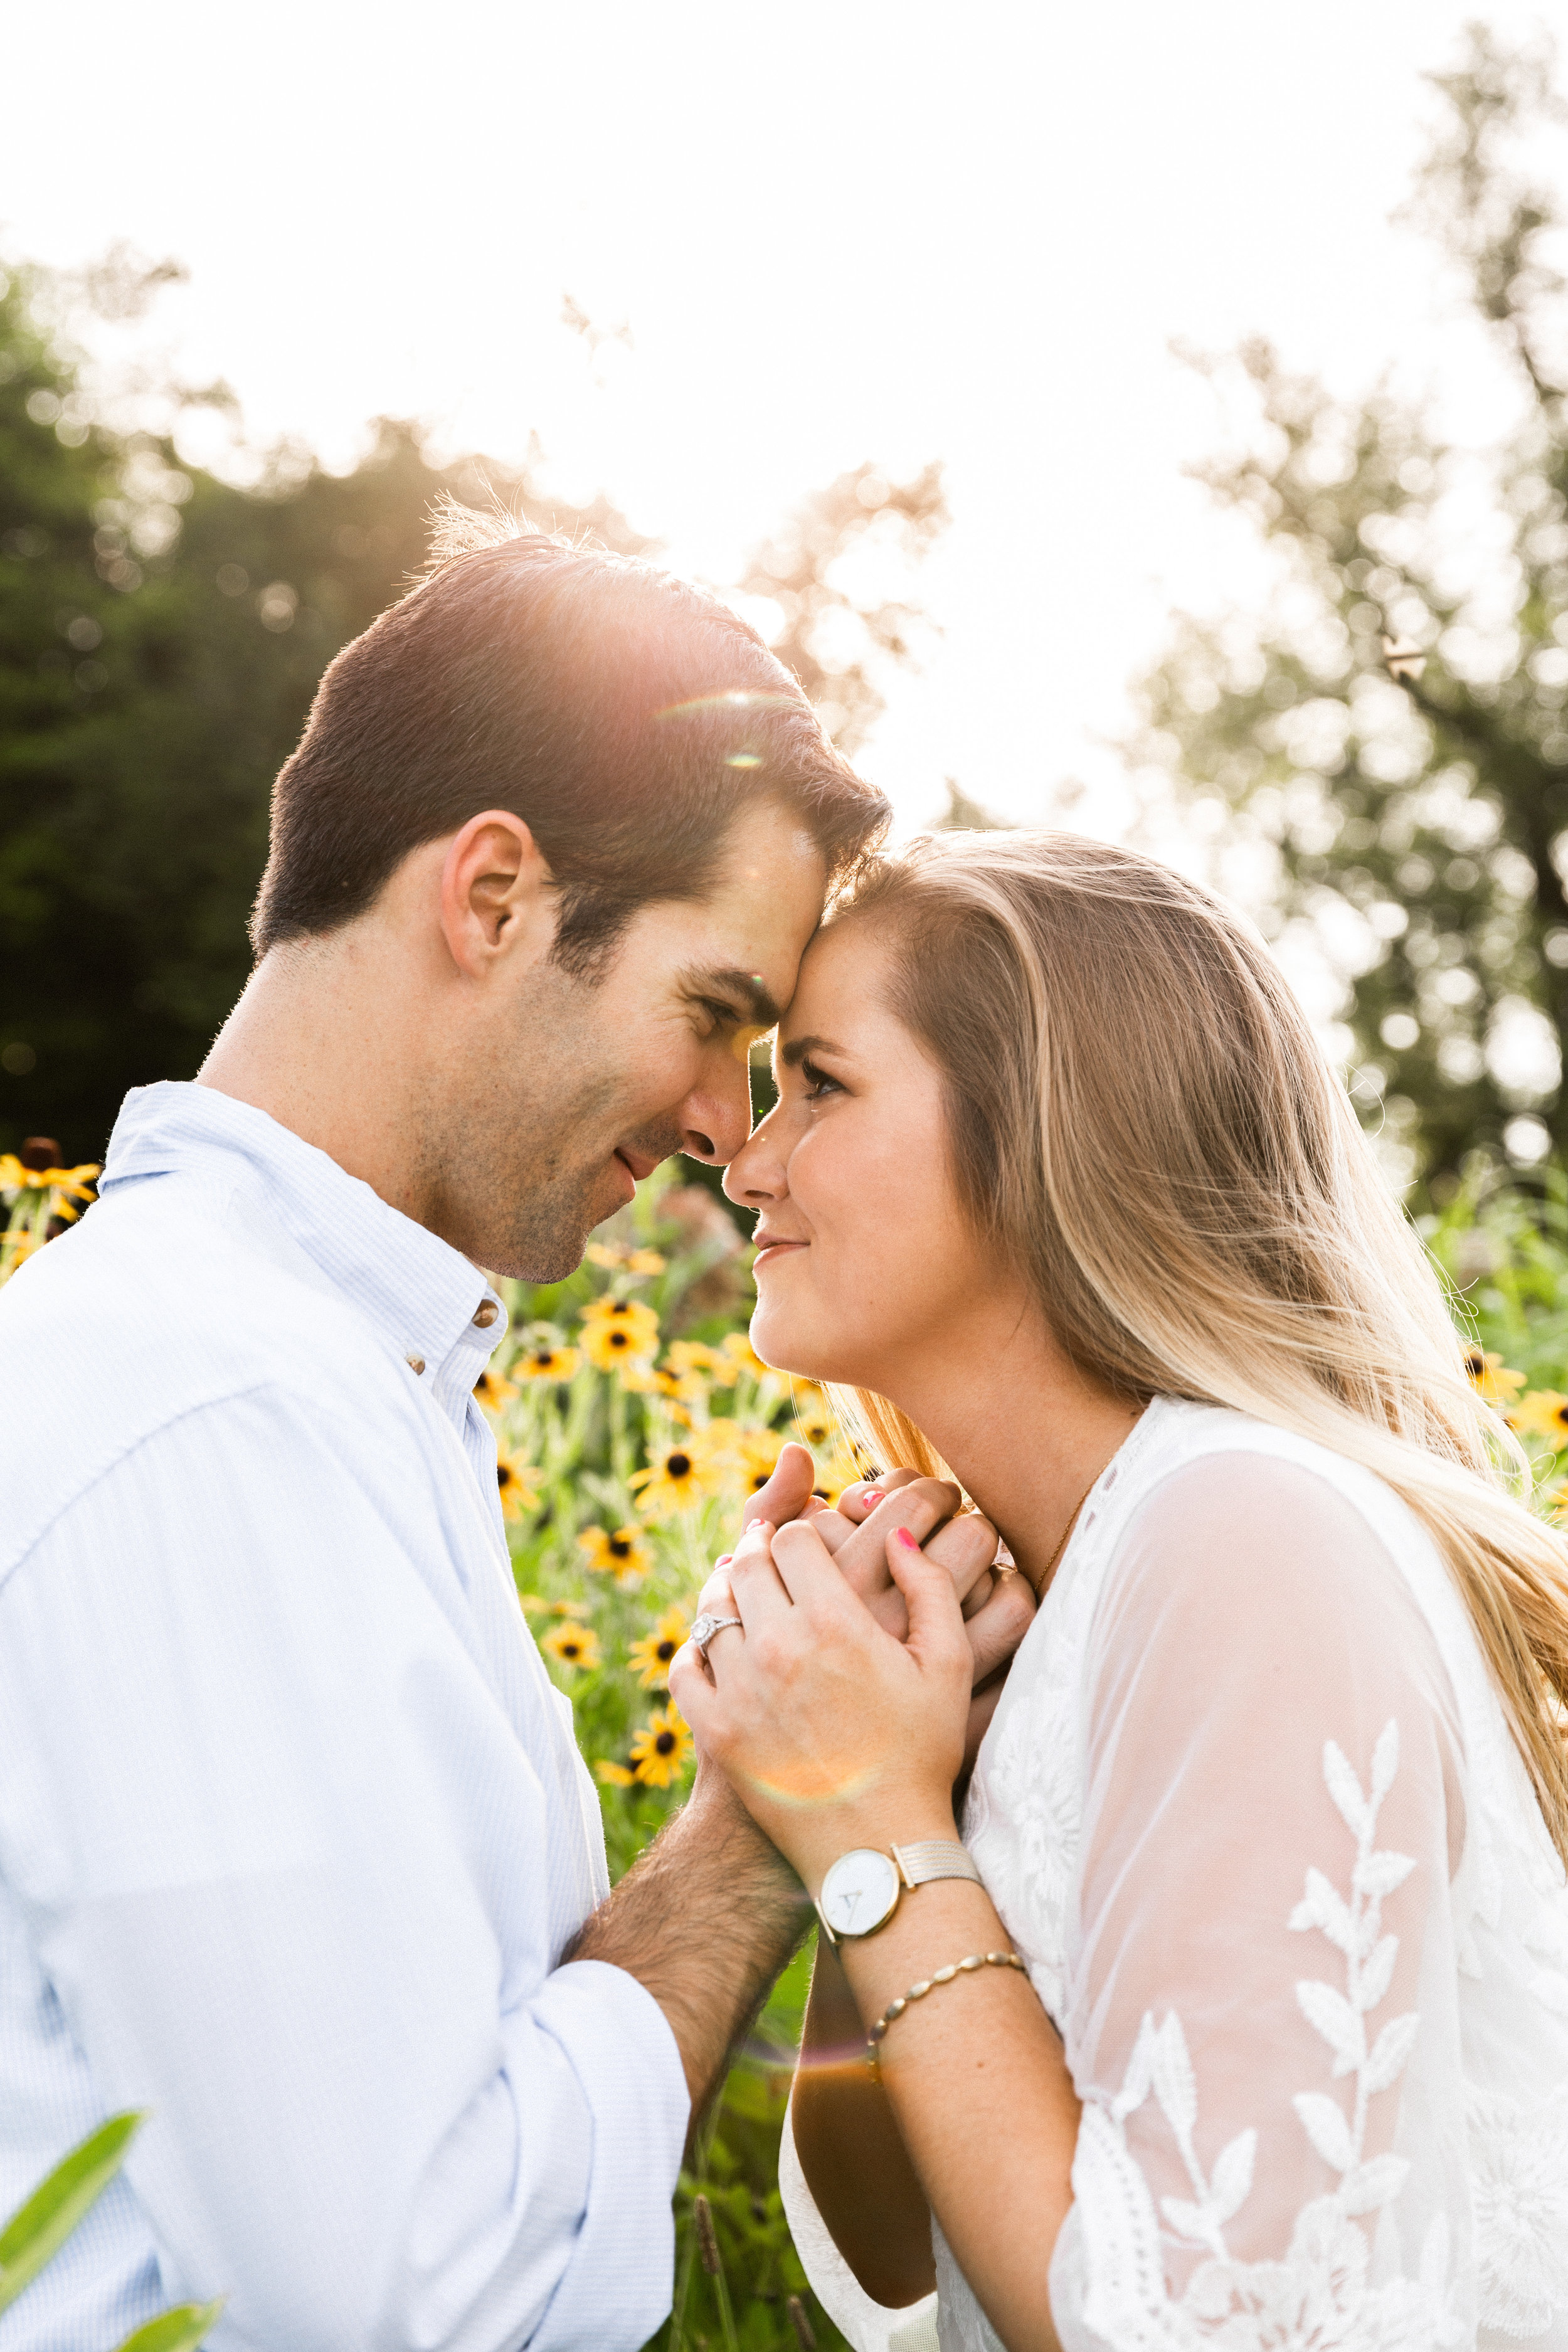 Claire + Chase - Engagement